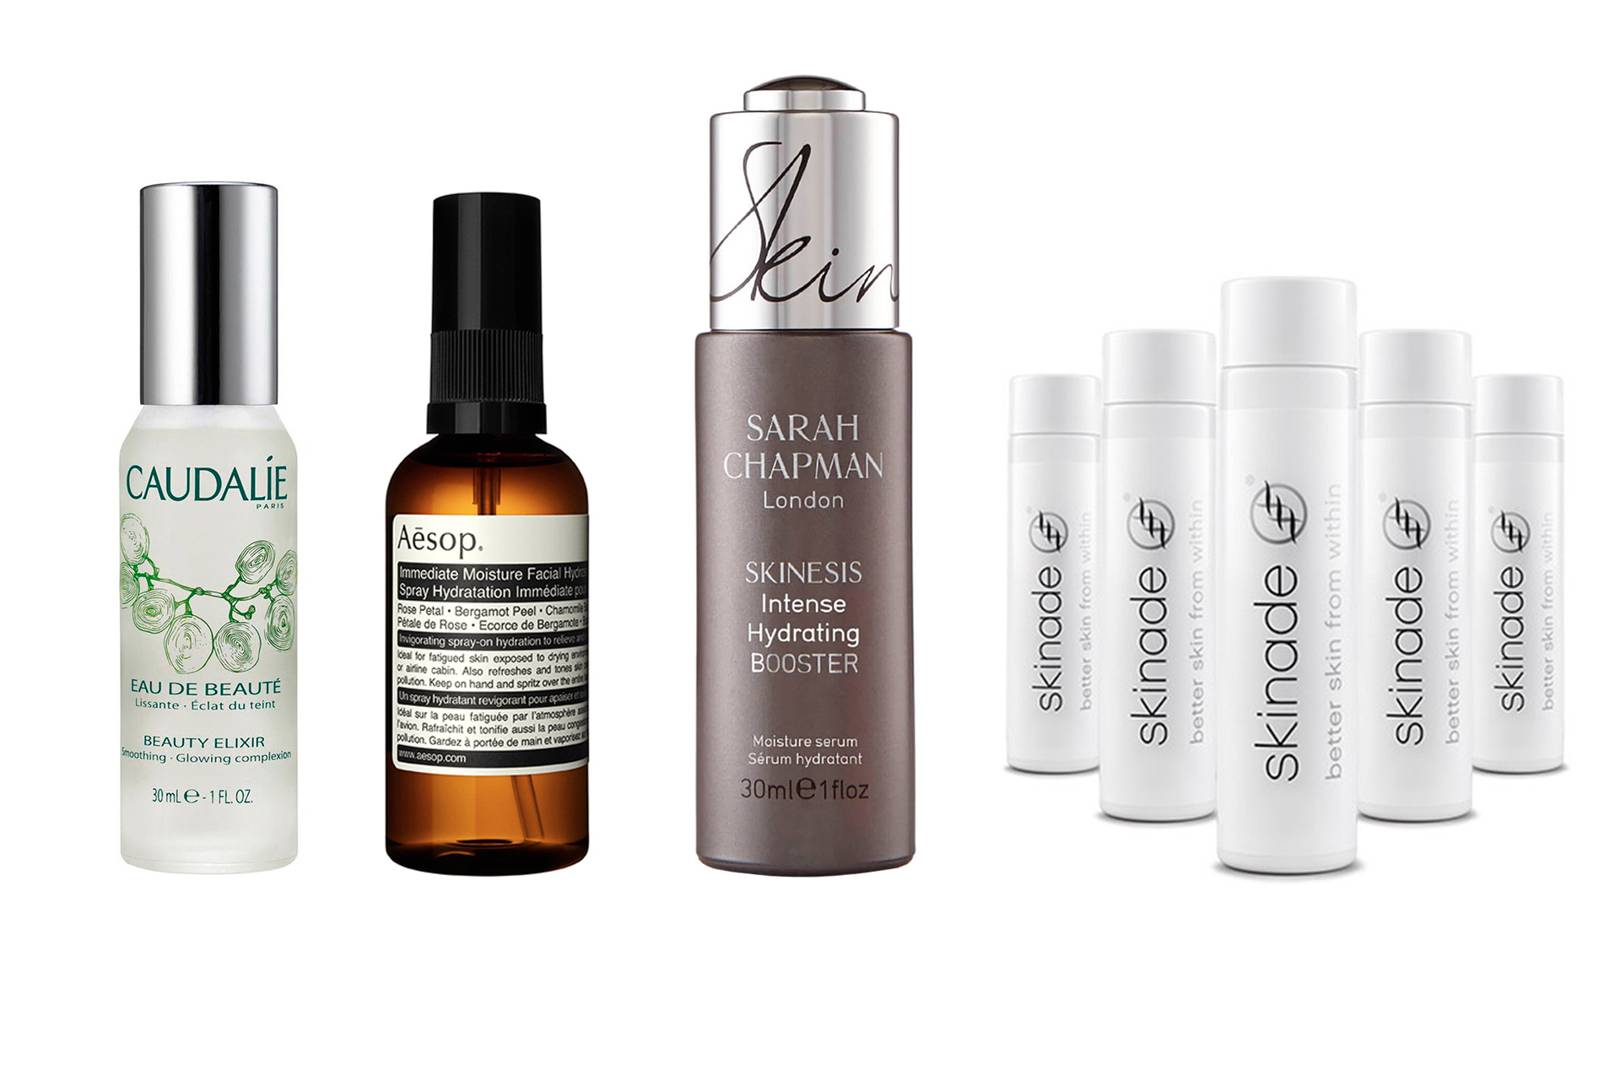 Jet set beauty essentials | Tatler